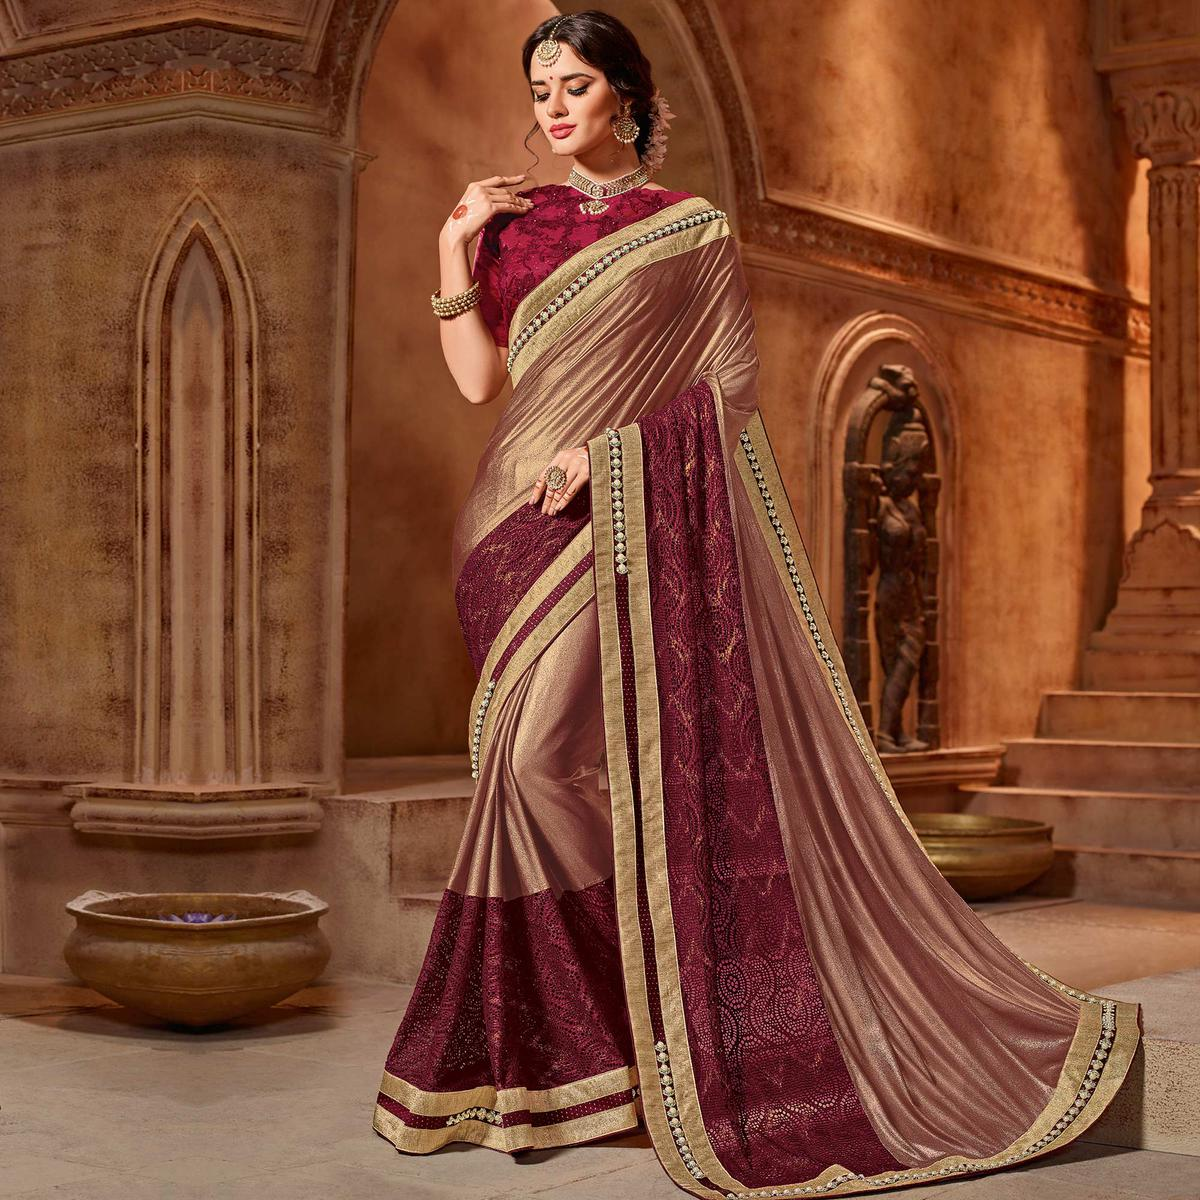 Cool Brown-Maroon Colored Partywear Embroidered Two Tone Glitter Lycra Saree